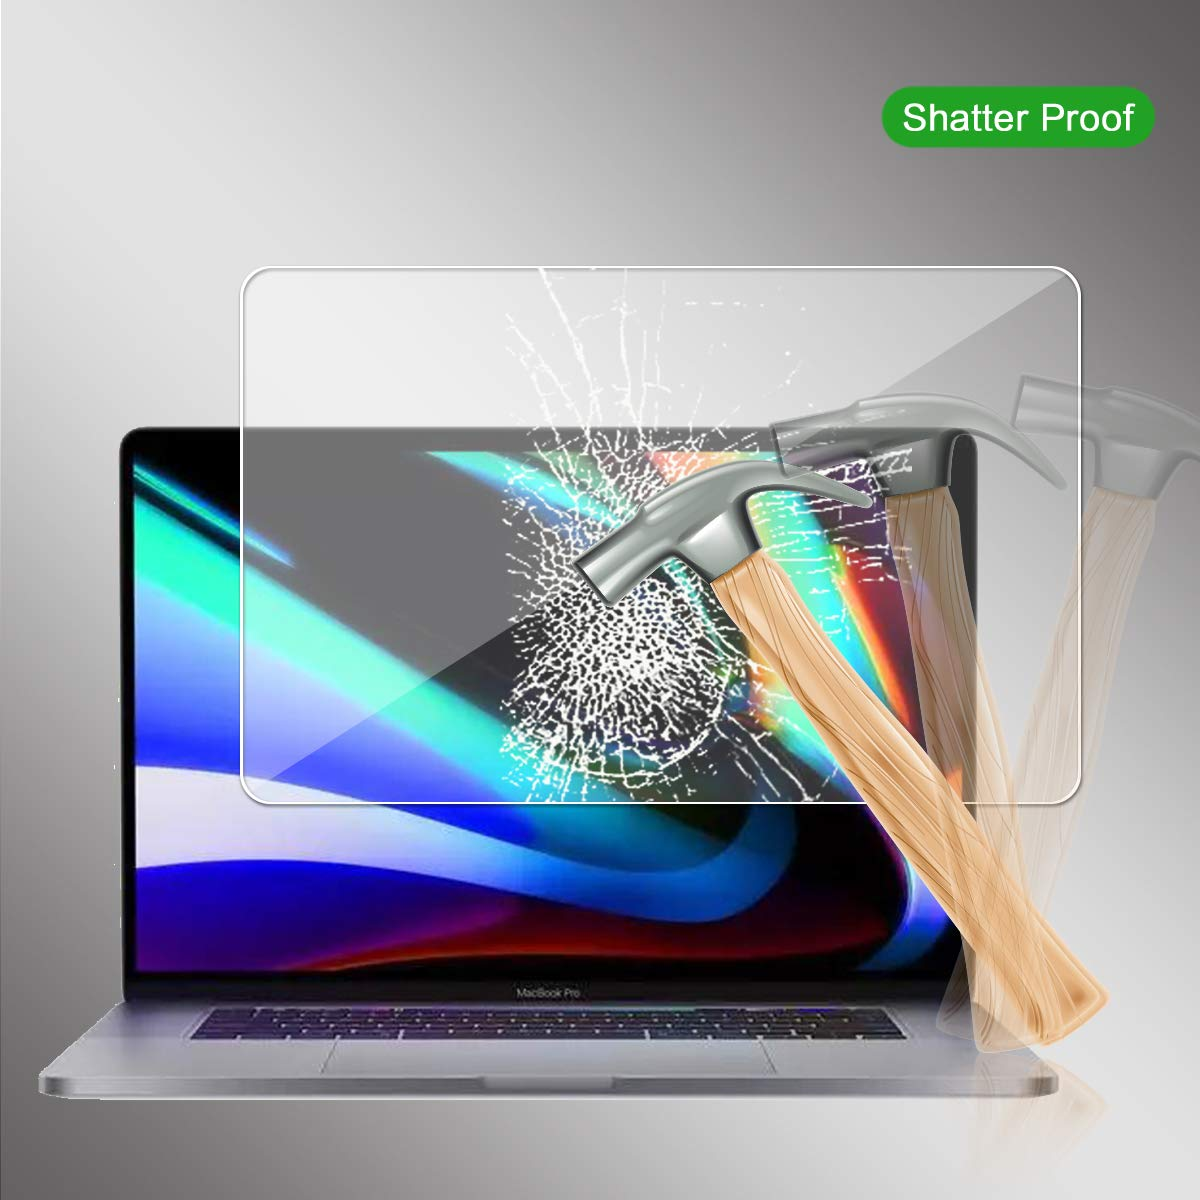 Ultra Slim Clear Tempered Glass Screen Protector Film Anti-Scratch Screen Cover 1 Pack Mihify Mart For MacBook Pro 16 Inch Screen Protector,